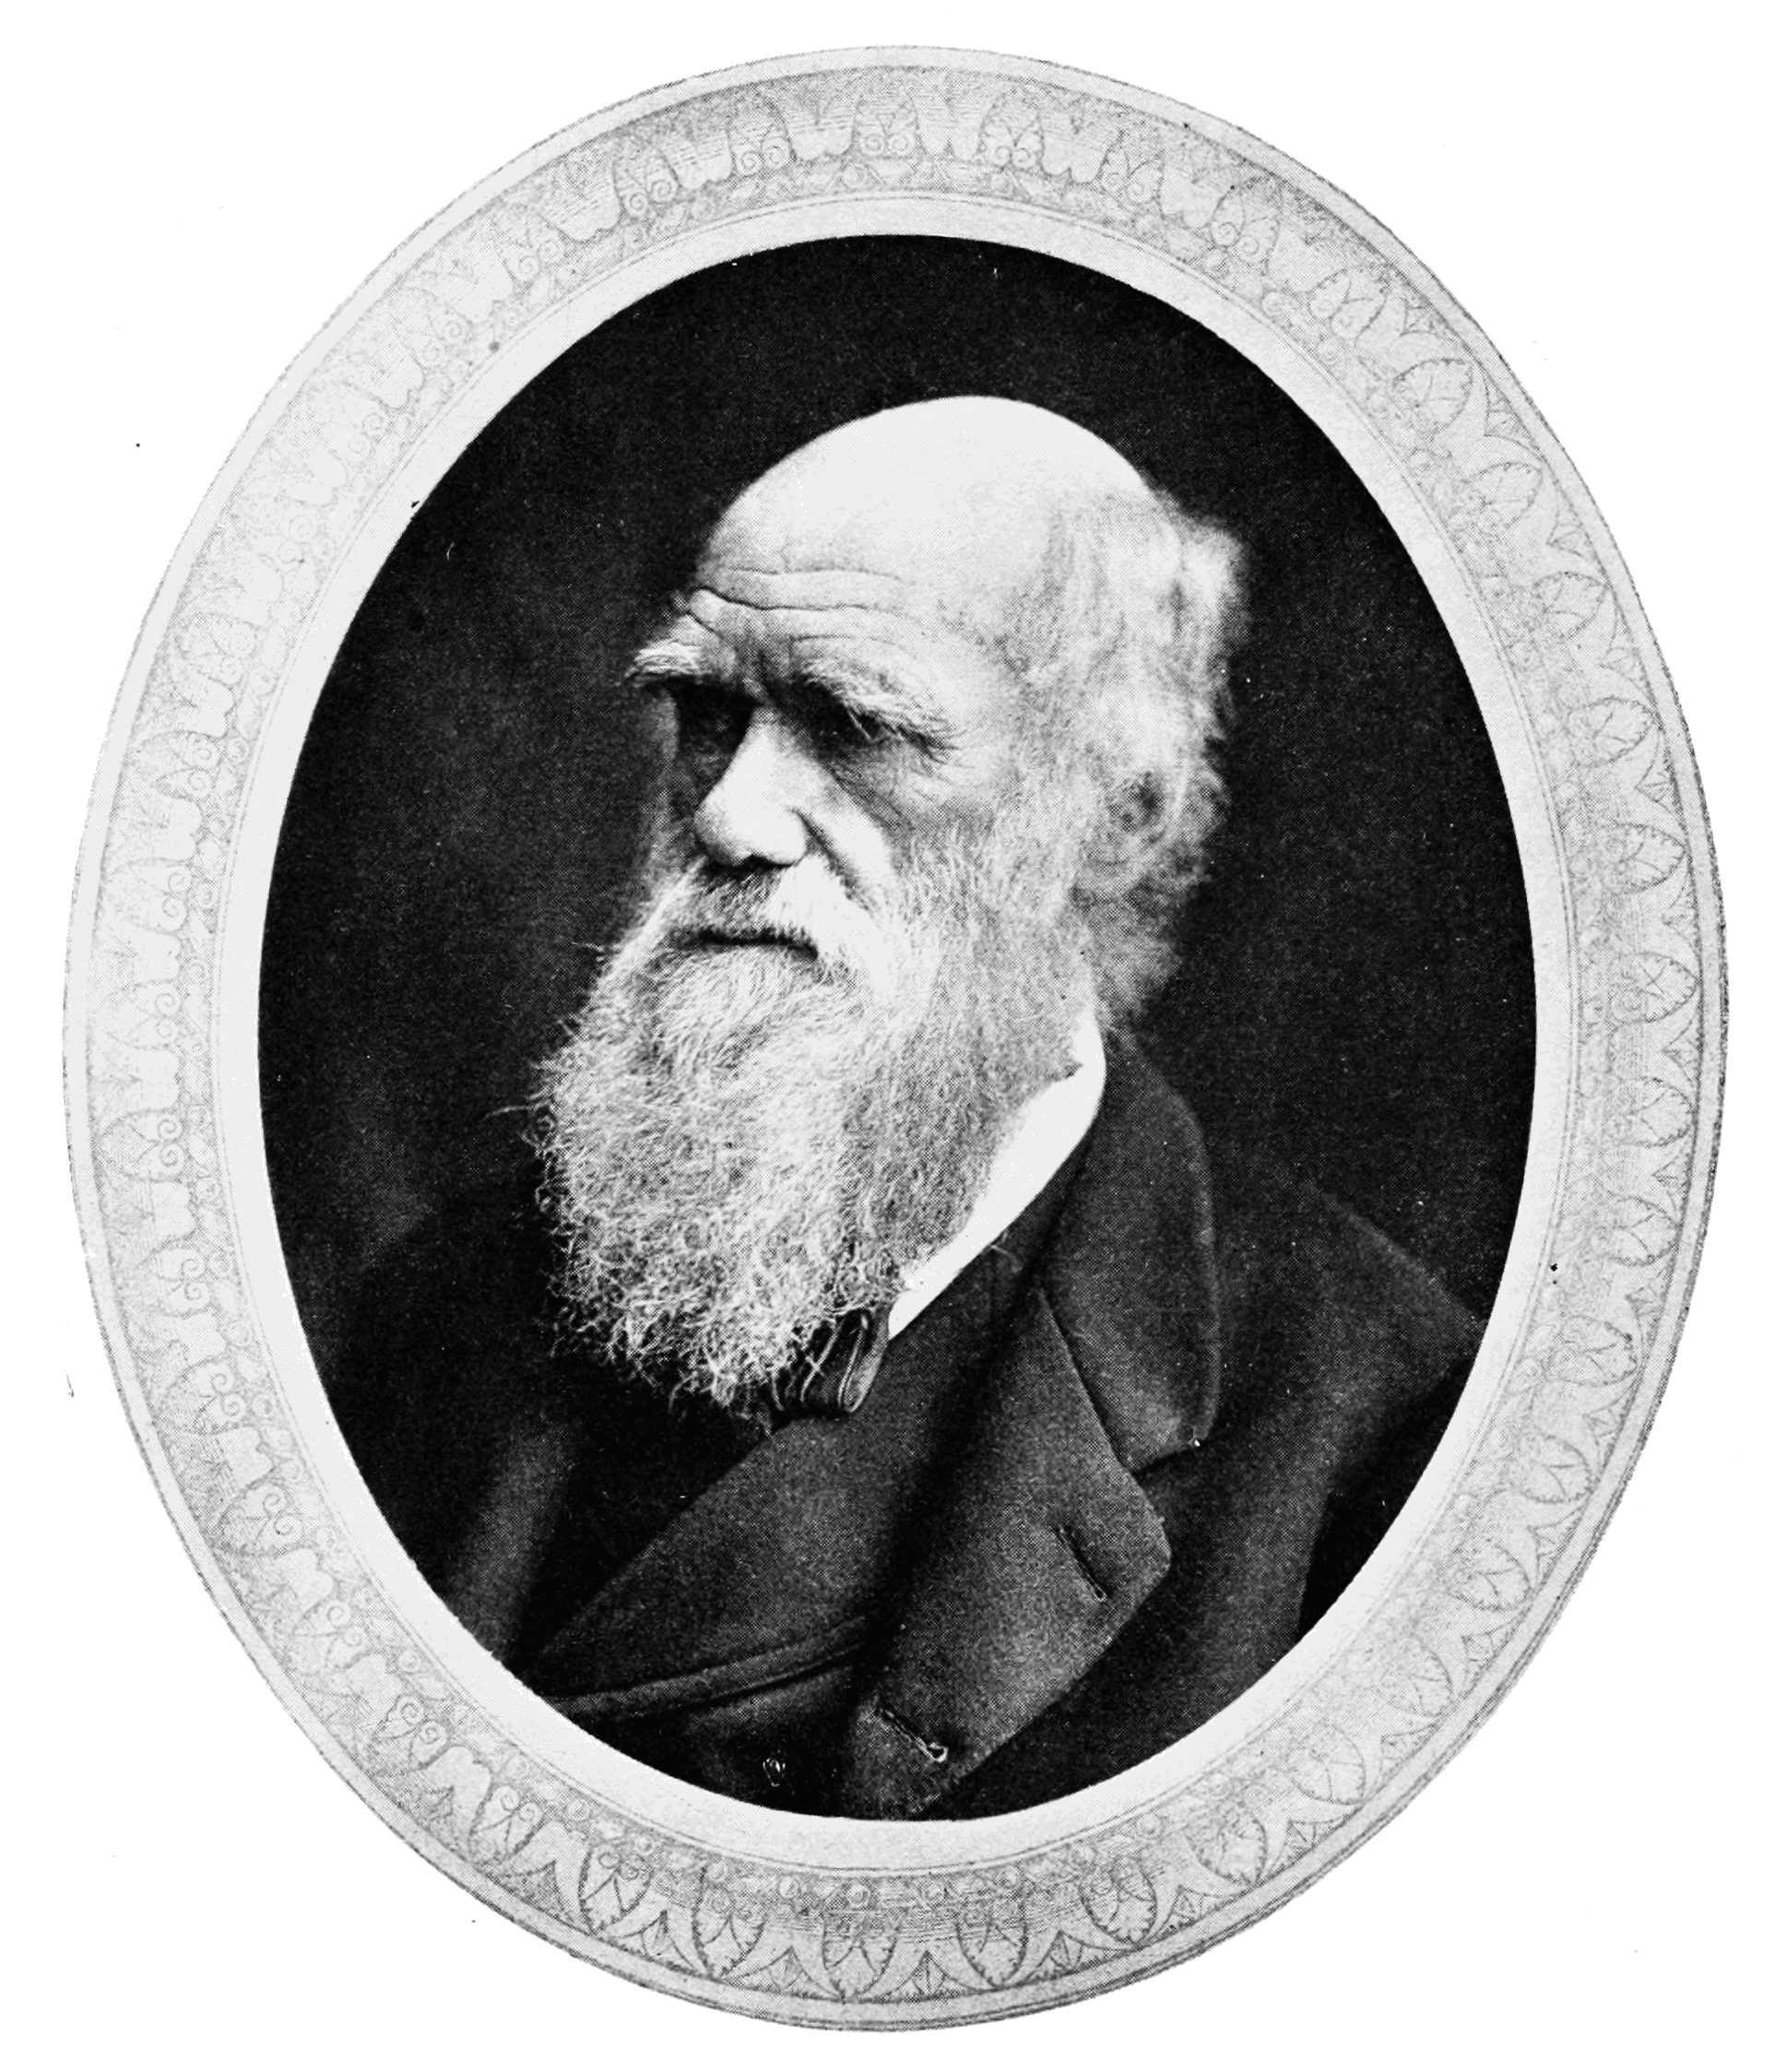 a history of biology through charles darwins works Charles darwin's theory of evolution by natural selection falls into this category,   as with most ideas, however, darwin's developed in a context other theorists  had been for some time been puzzling about the work of nature, and   published the following year as on the origin of species by means of natural  selection.